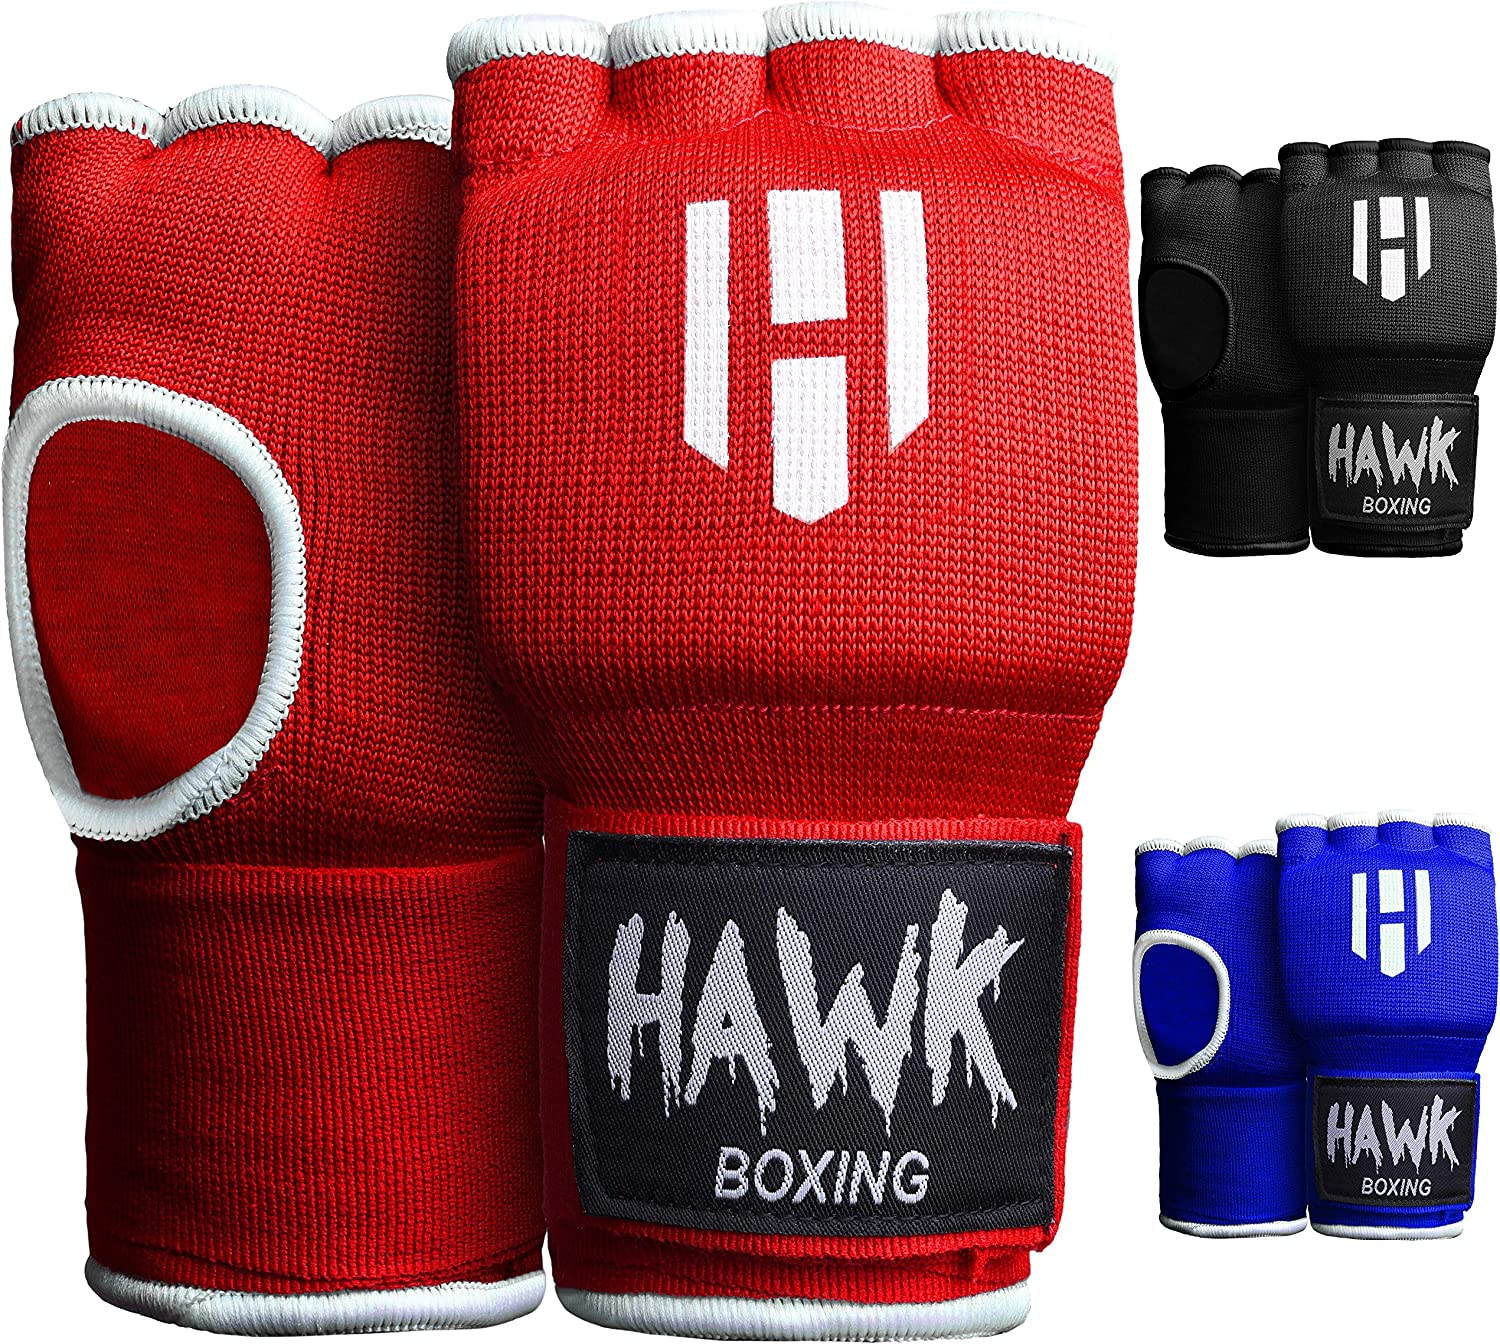 Hawk Padded Inner Gloves Training Gel Elastic Hand Wraps for Boxing Gloves Quick Wraps Men & Women Kickboxing Muay Thai MMA Bandages Fist Knuckle Wrist Wrap Protector Handwraps (Pair) : Sports & Outdoors